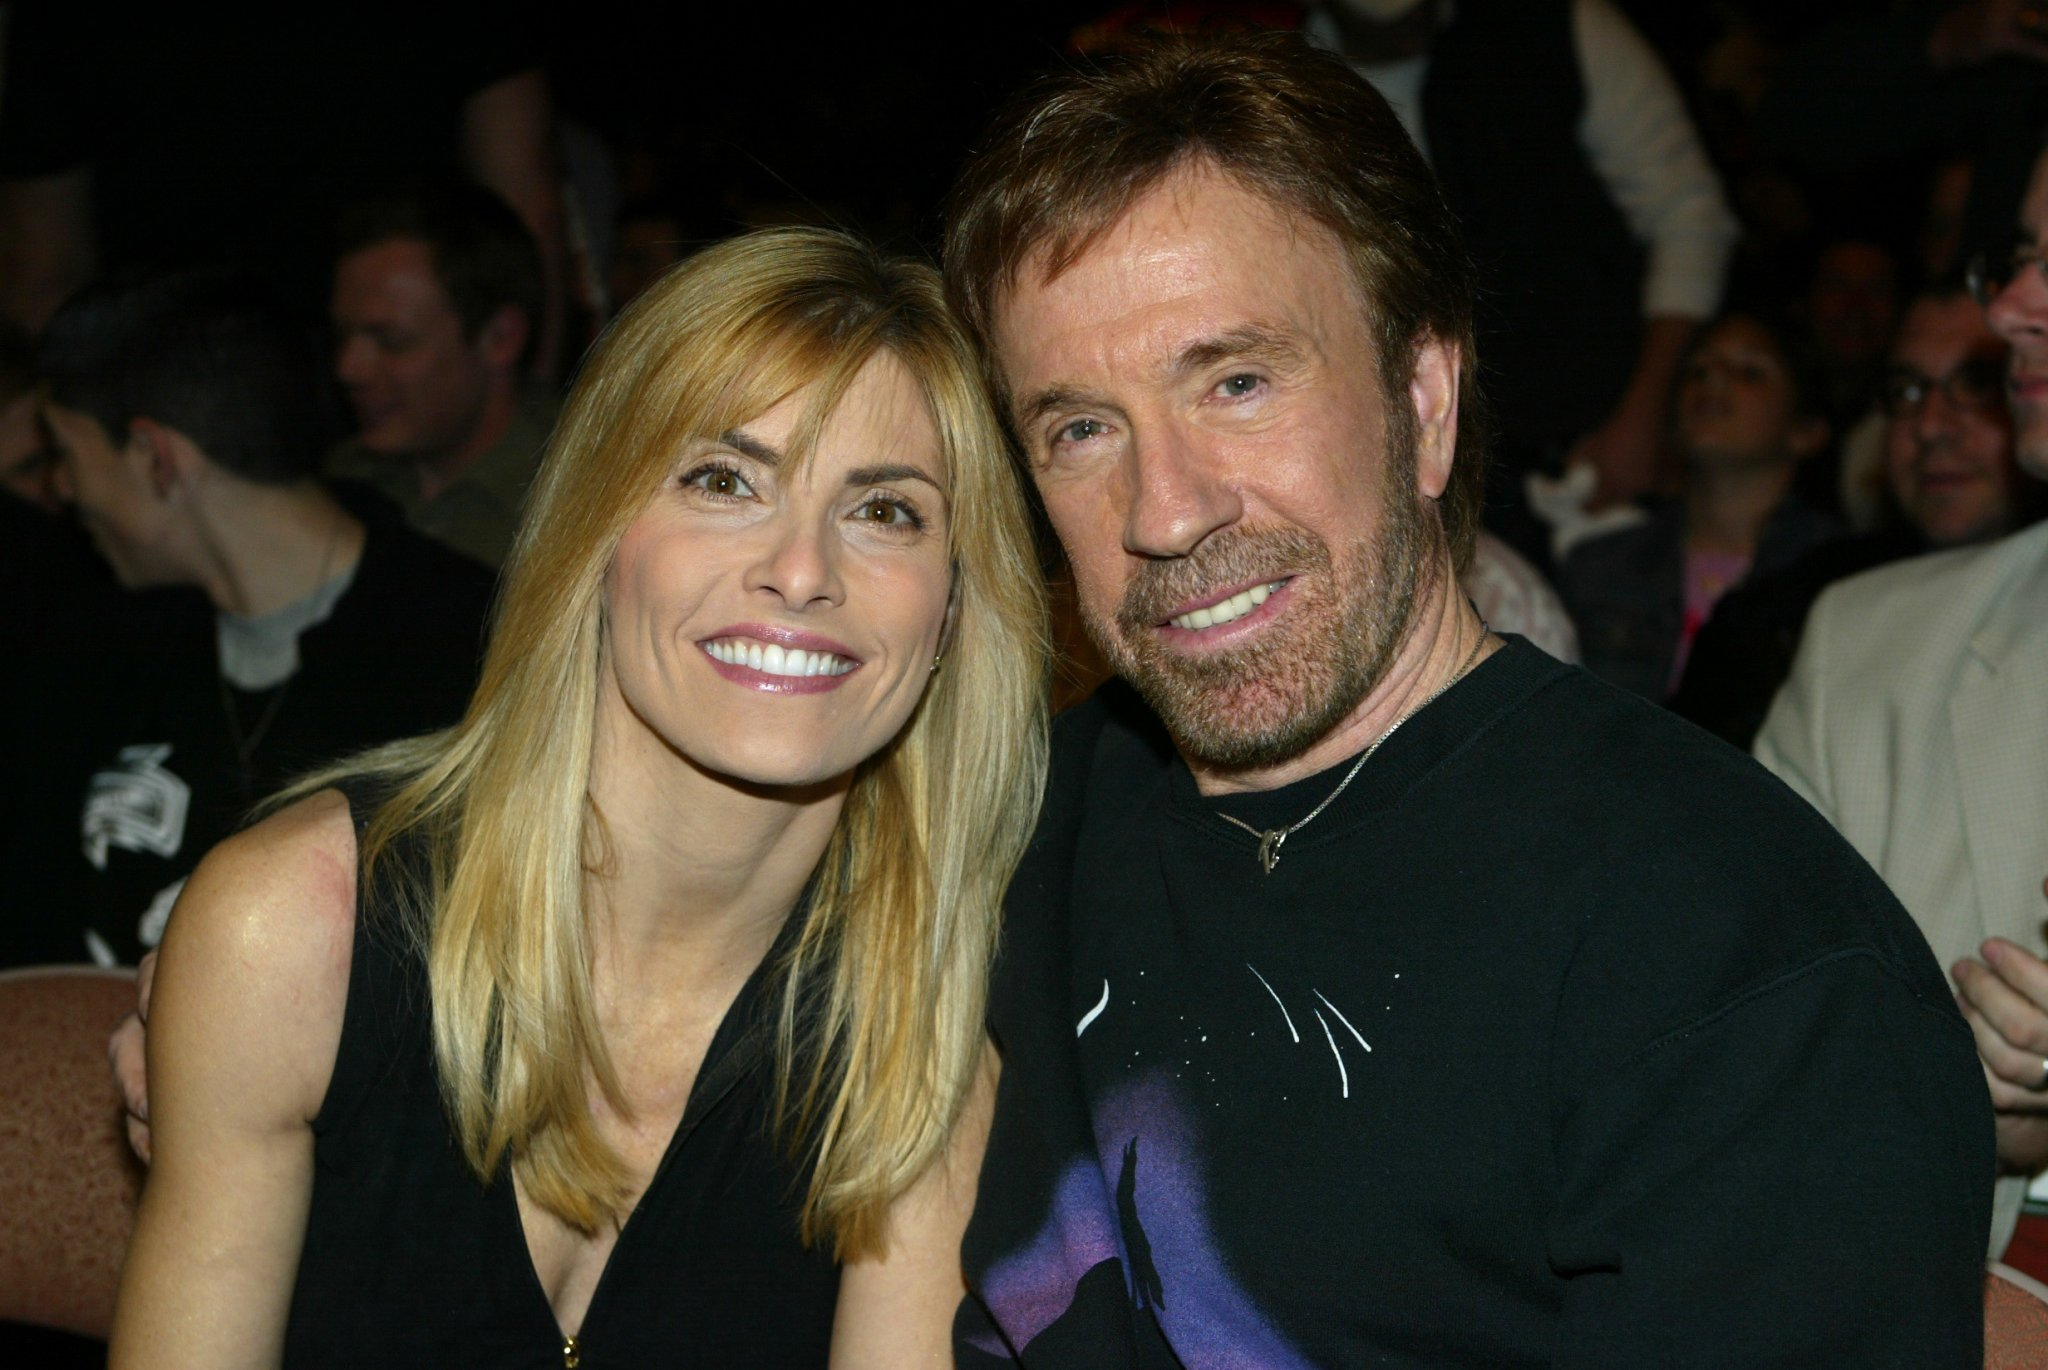 Chuck Norris' Erection To Be Fought Over In A Court Of Law, As The Lord Wishes - BroBible